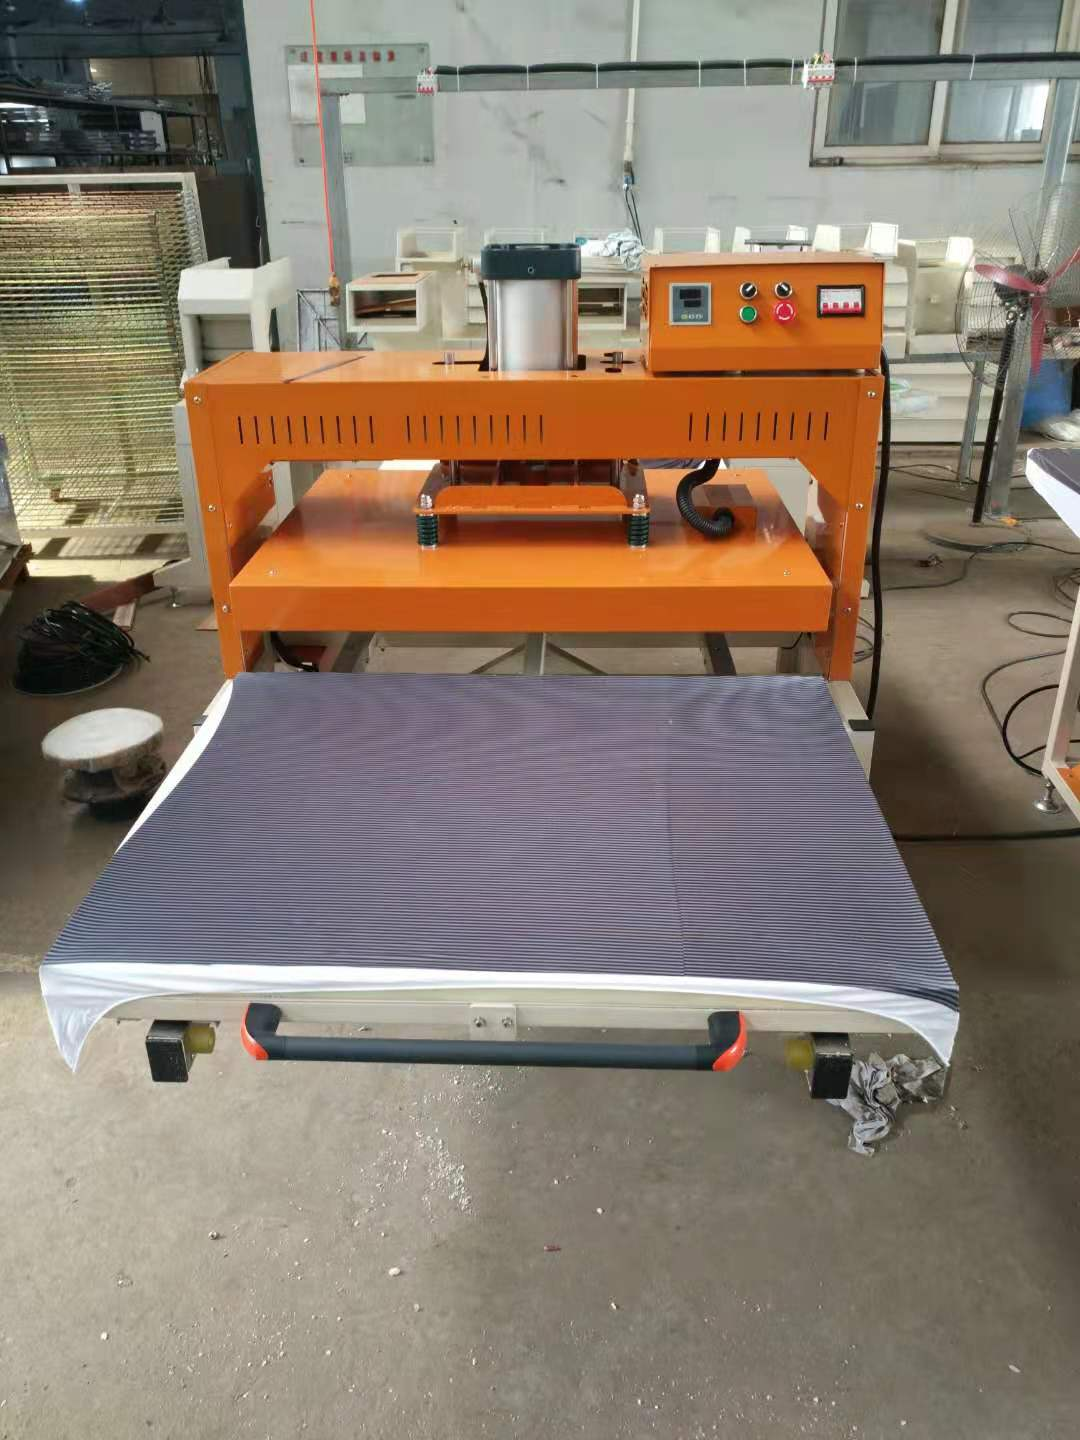 HJD-K701 Large Printing Area 80*100 cm Textile Cloth Heat Transfer Printing Machine